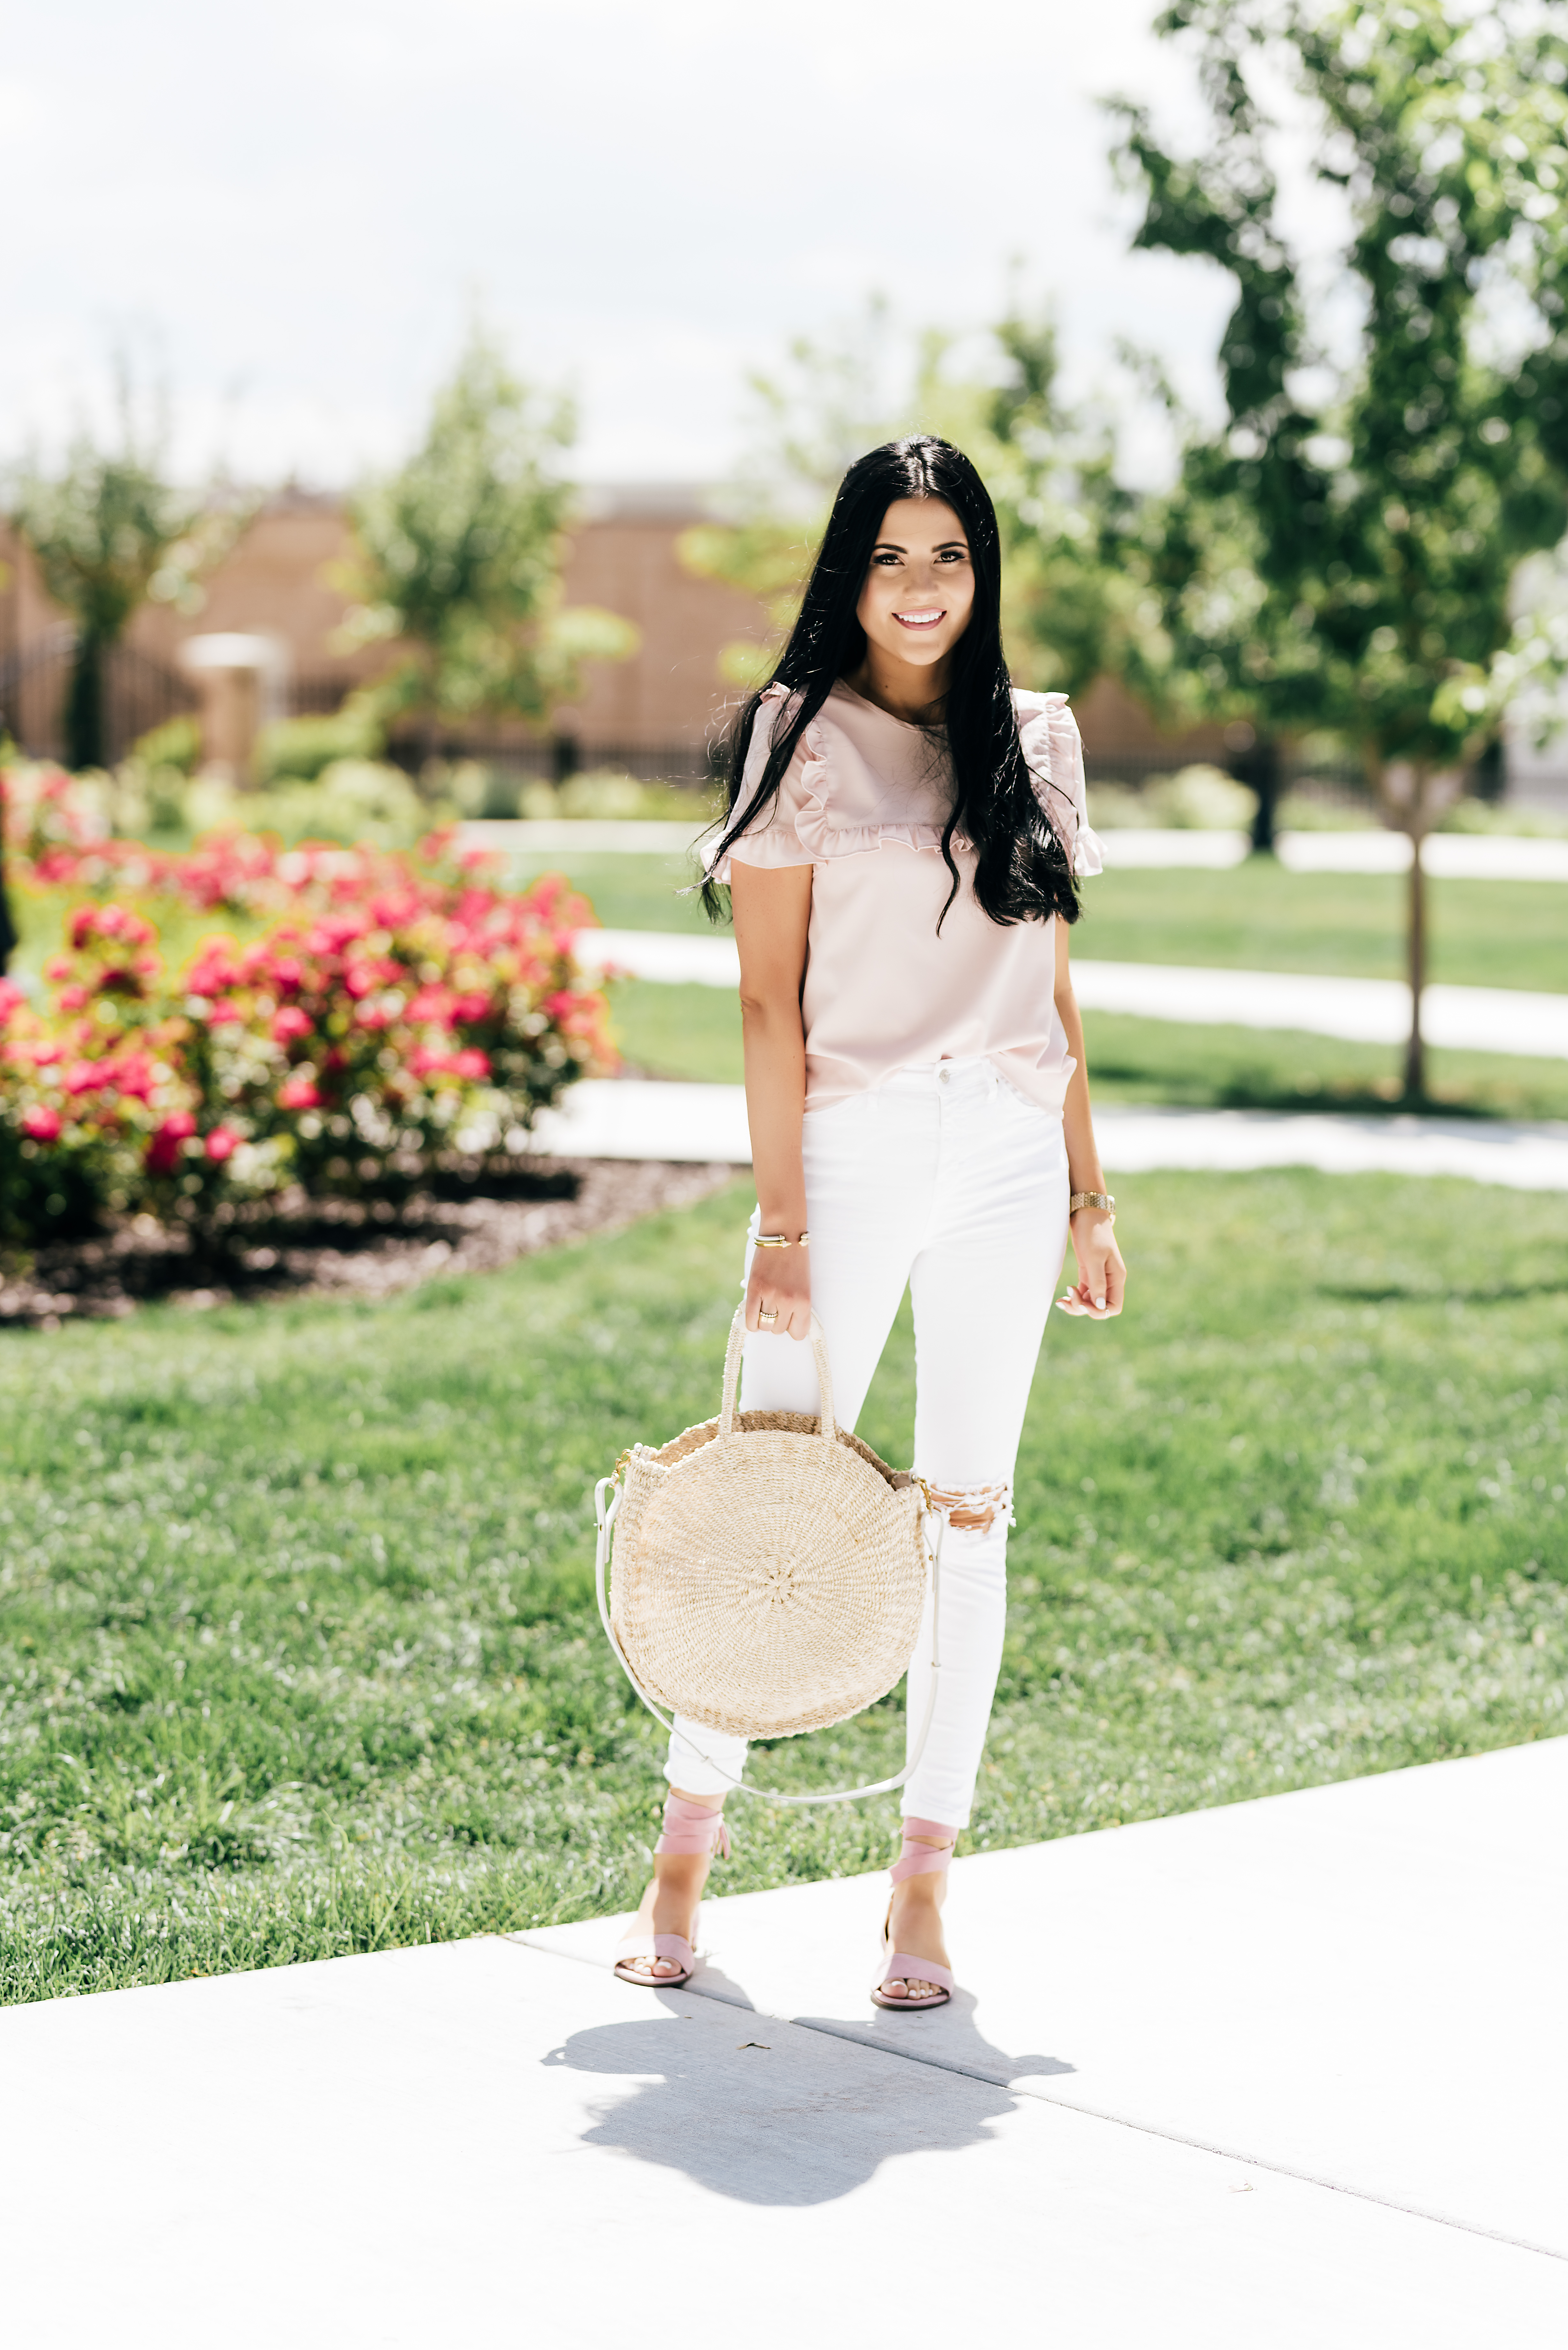 I Spoke To Social Media Influencer Rachel Parcell About Her Journey And Best Advice